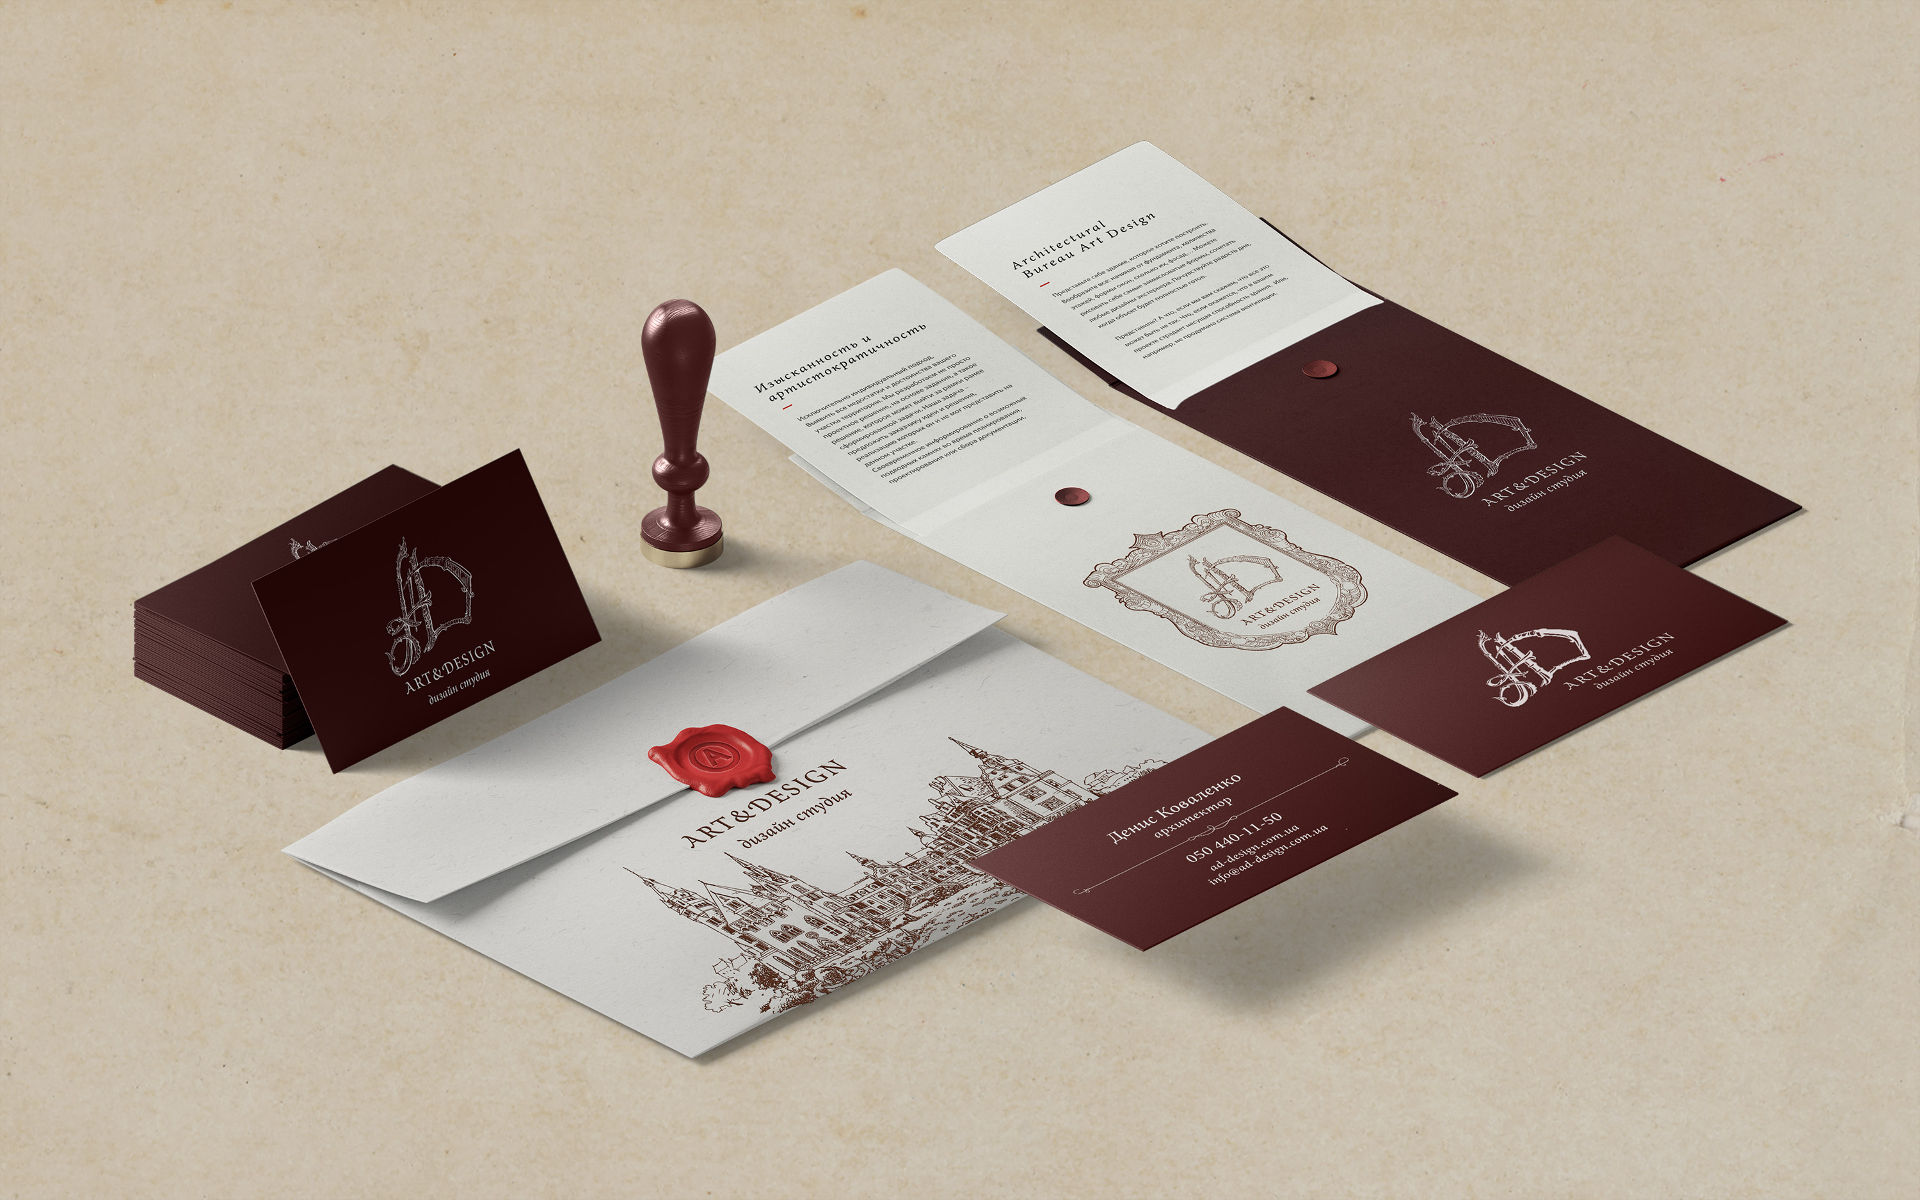 Дизайн of the corporate identity архитектурной студии, Architecture studio corporate identity